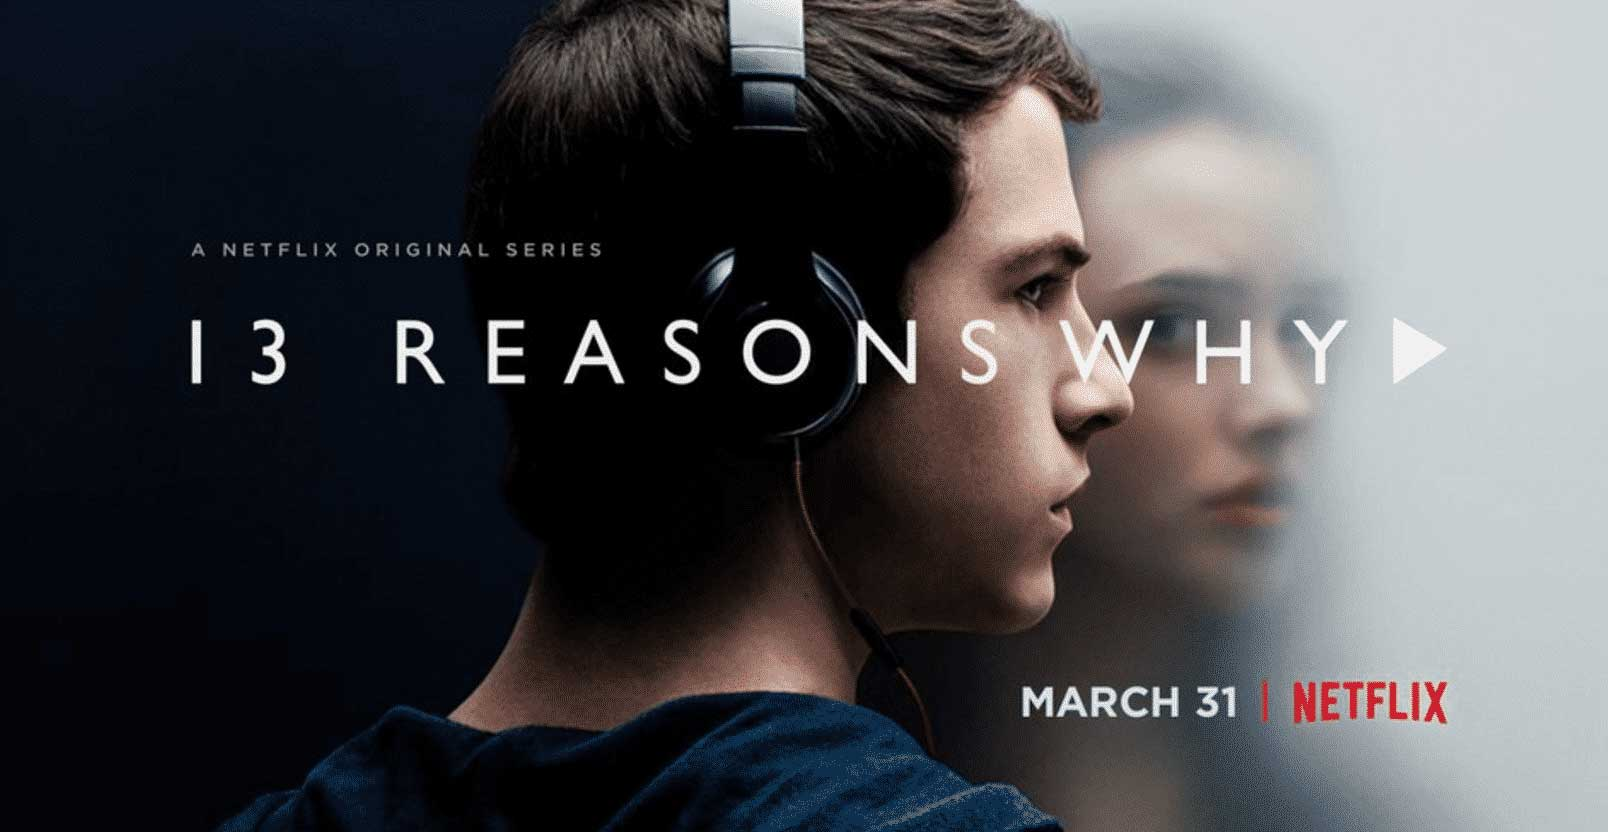 13 reasons why cyberharcèlement